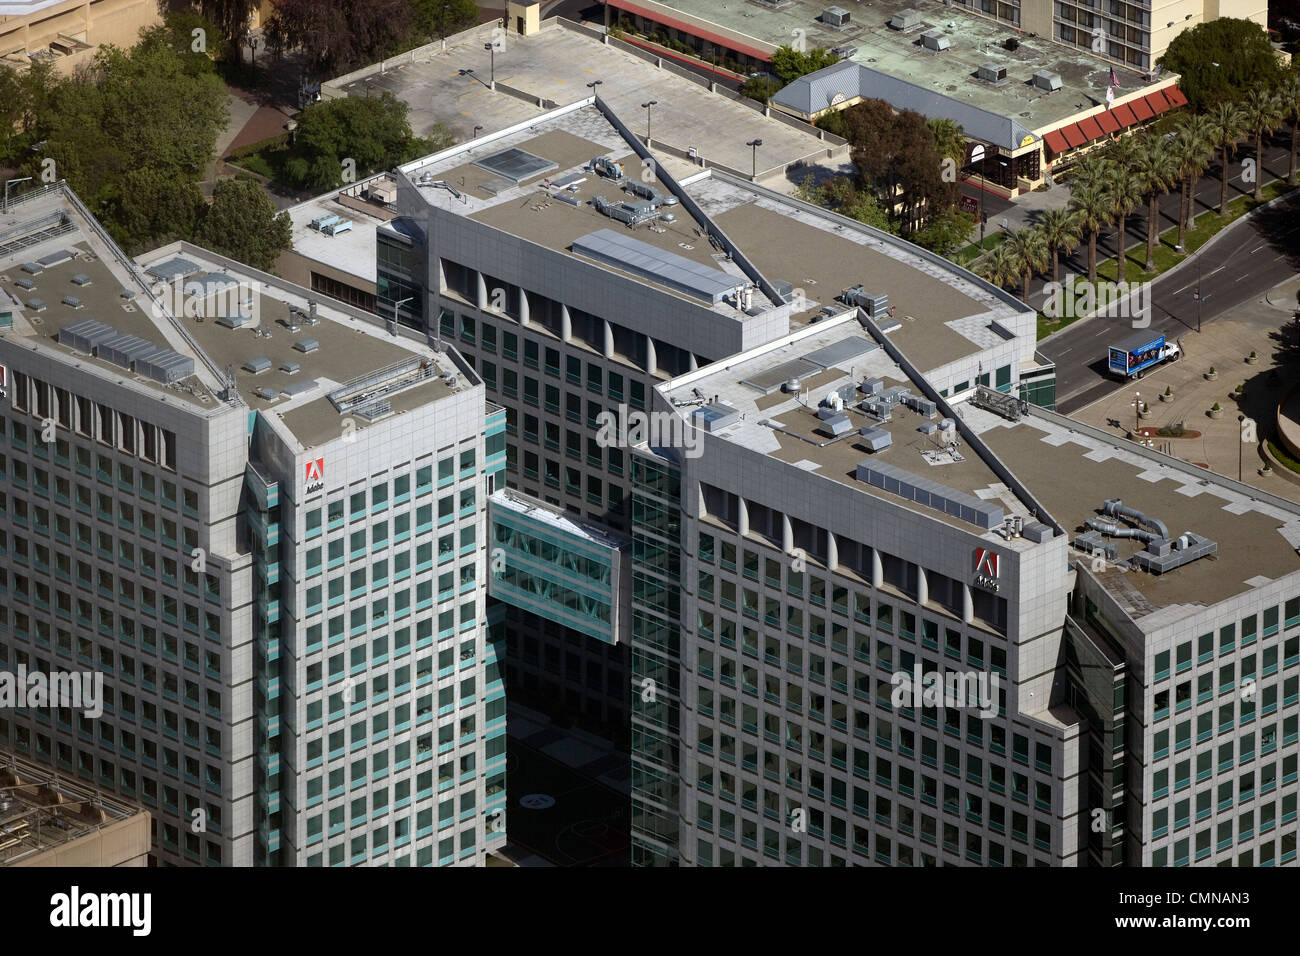 aerial view above Adobe Systems San Jose California corporate headquarters - Stock Image